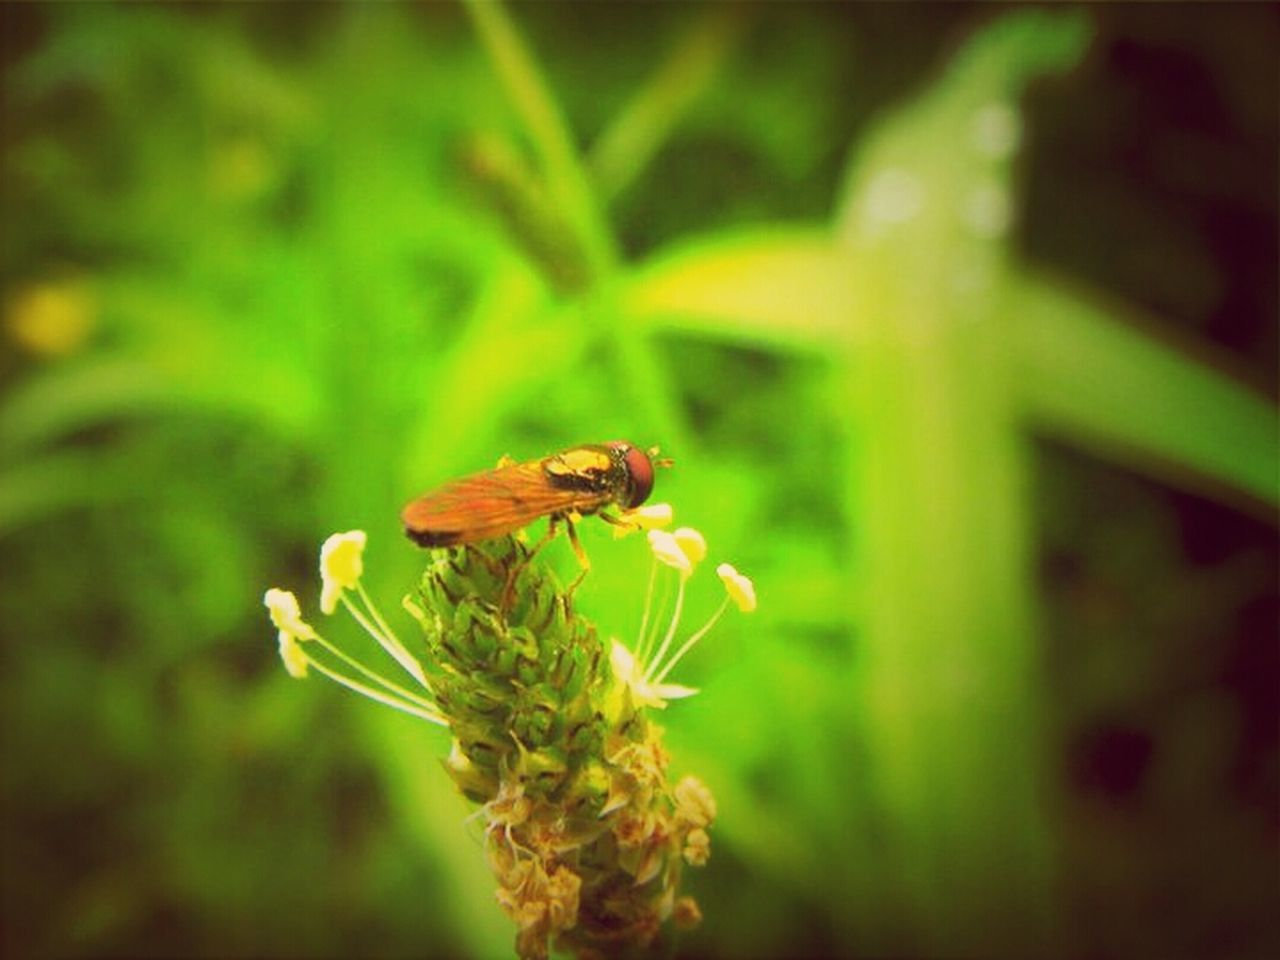 insect, animal themes, animals in the wild, one animal, plant, flower, nature, growth, wildlife, green color, no people, fragility, beauty in nature, animal wildlife, outdoors, close-up, day, bee, pollination, flower head, yellow, freshness